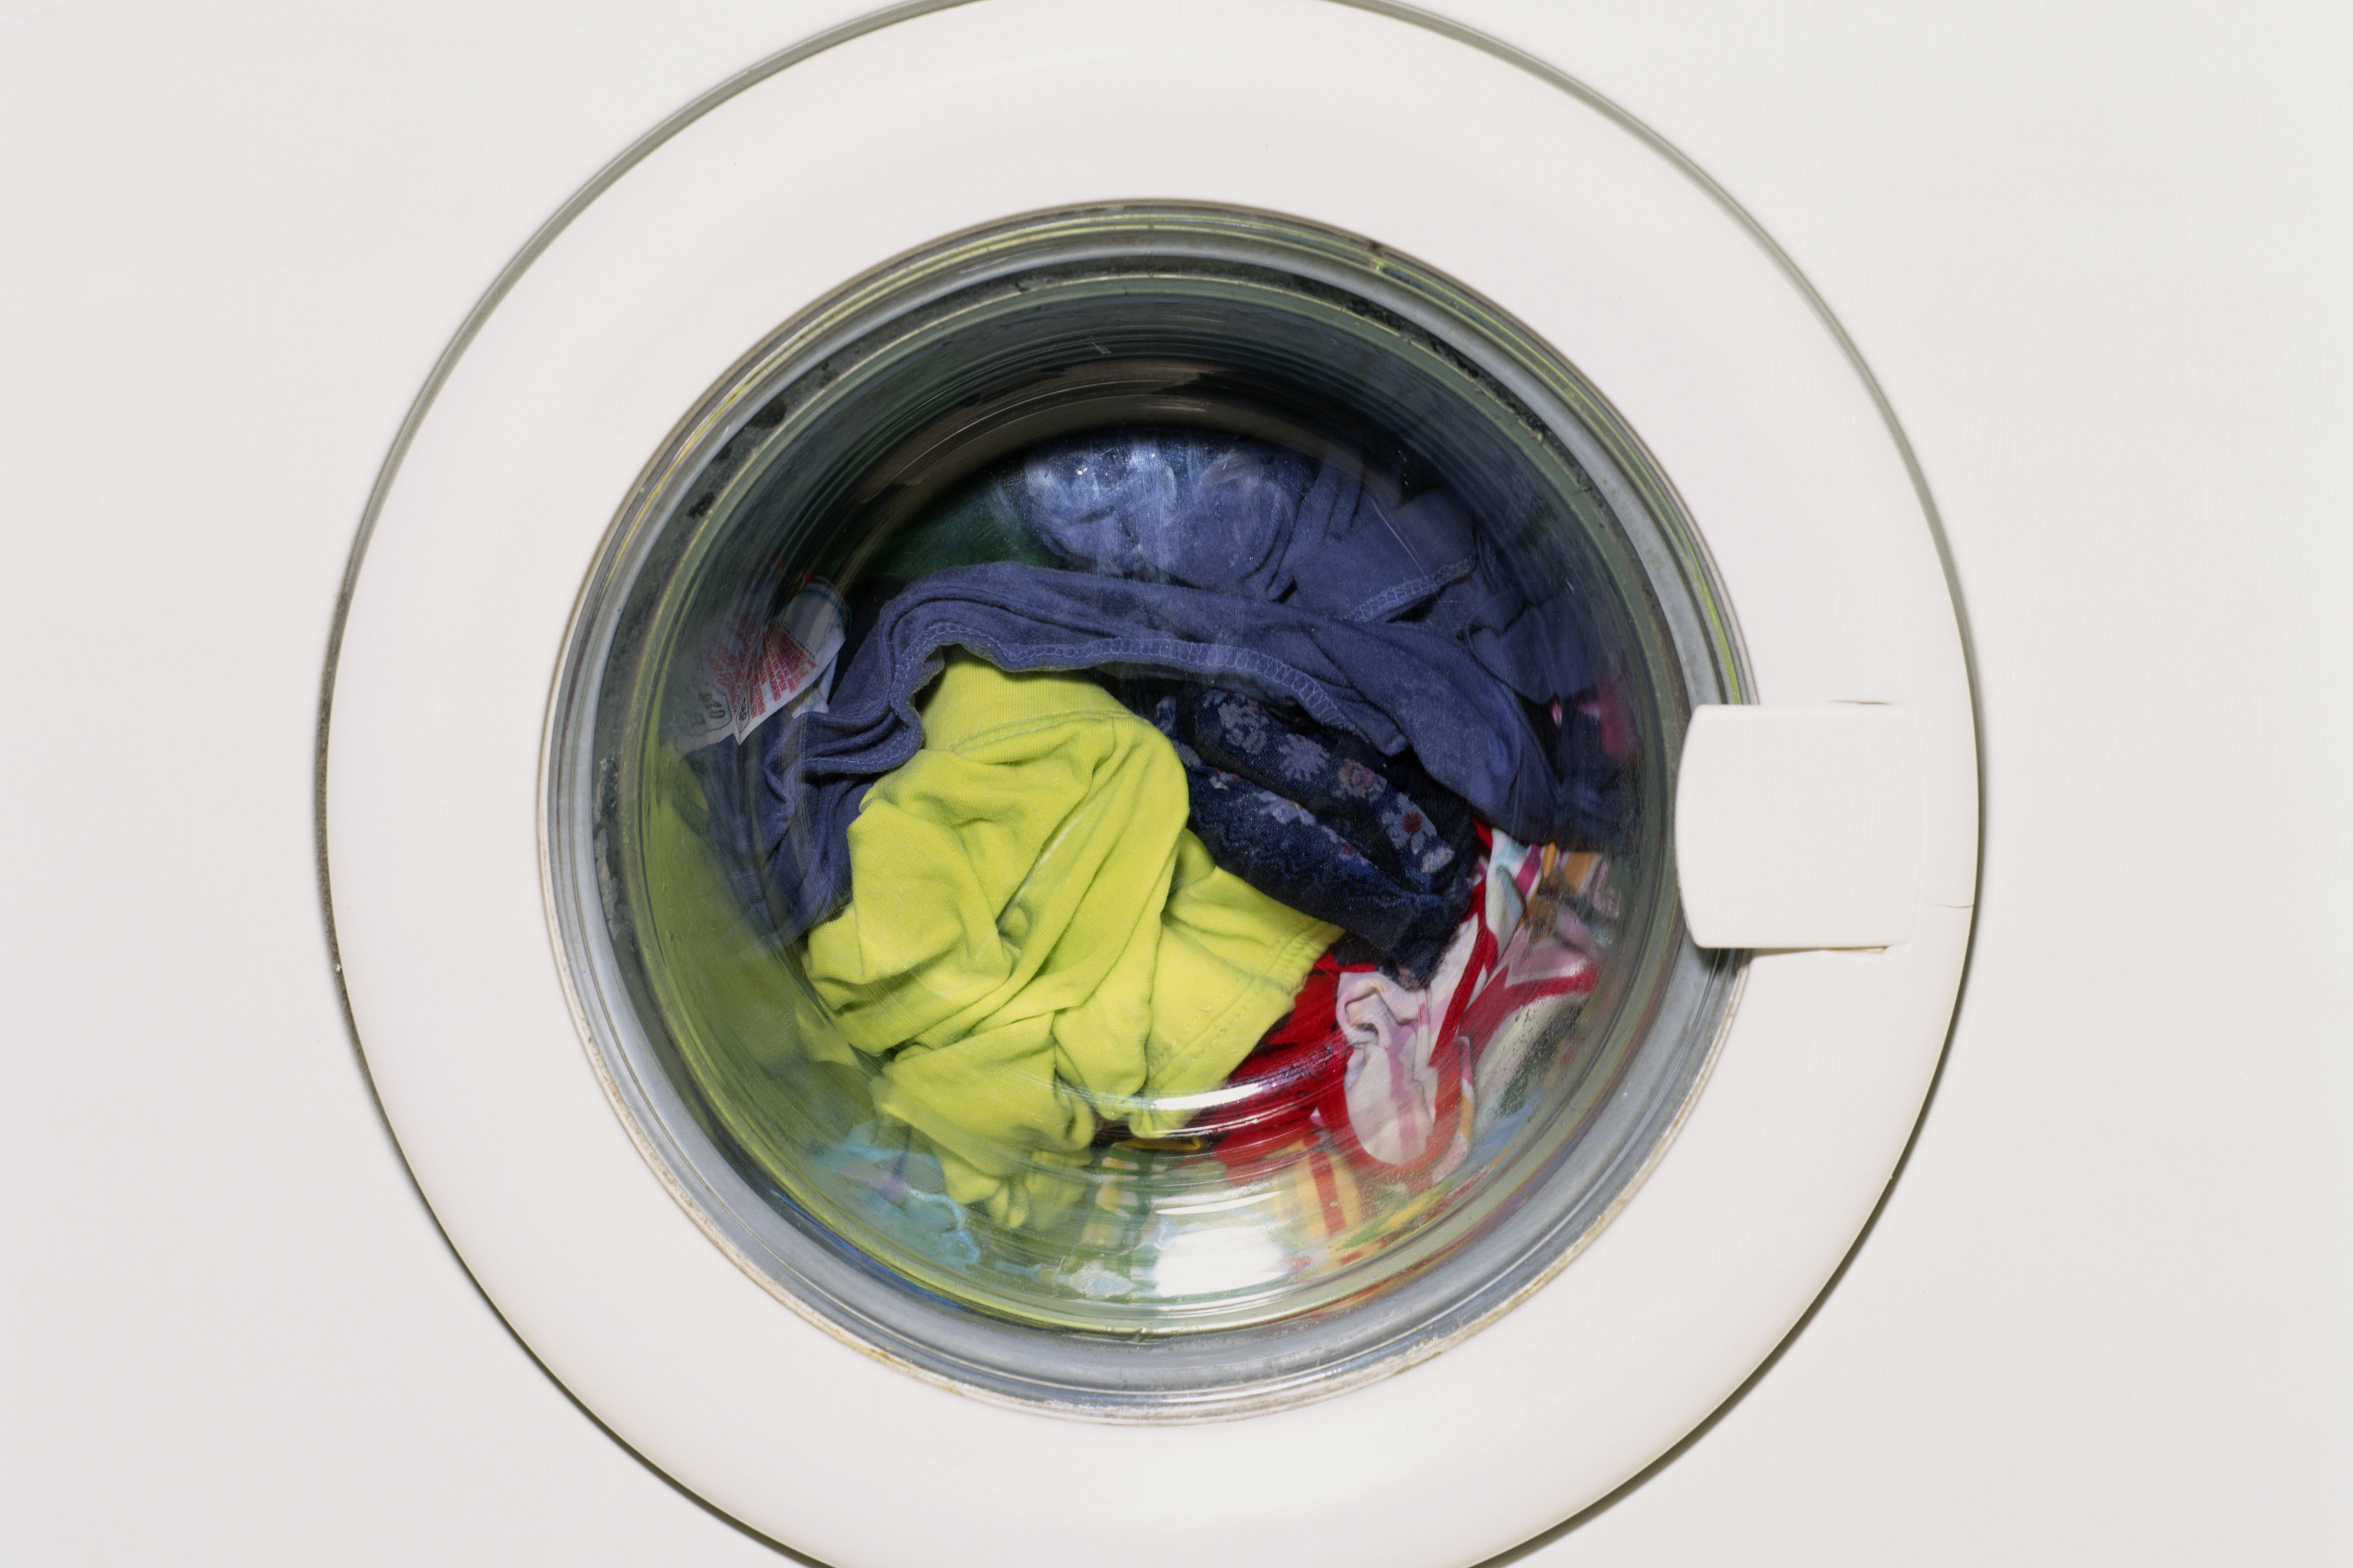 The Important Reason You Should Wash Your Clothes Before Wearing Them